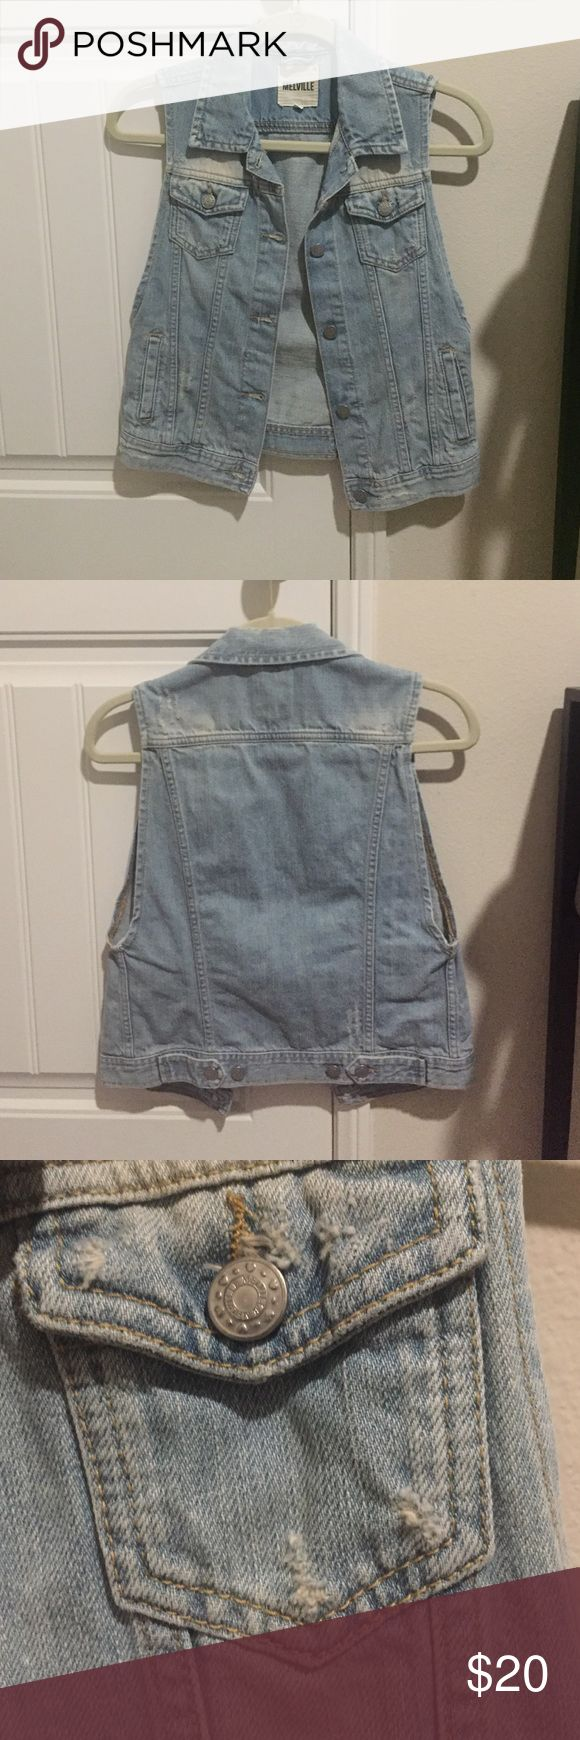 Denim vest Light wash denim vest from Brandy Melville. It has 2 pockets and 5 buttons in the front. The 2 button pockets on the chest are functional. There are also two more pockets on the sides to put your hands in. There is a tiny bit if scratch destructed detail ;) size says medium but it feels like a small Brandy Melville Tops